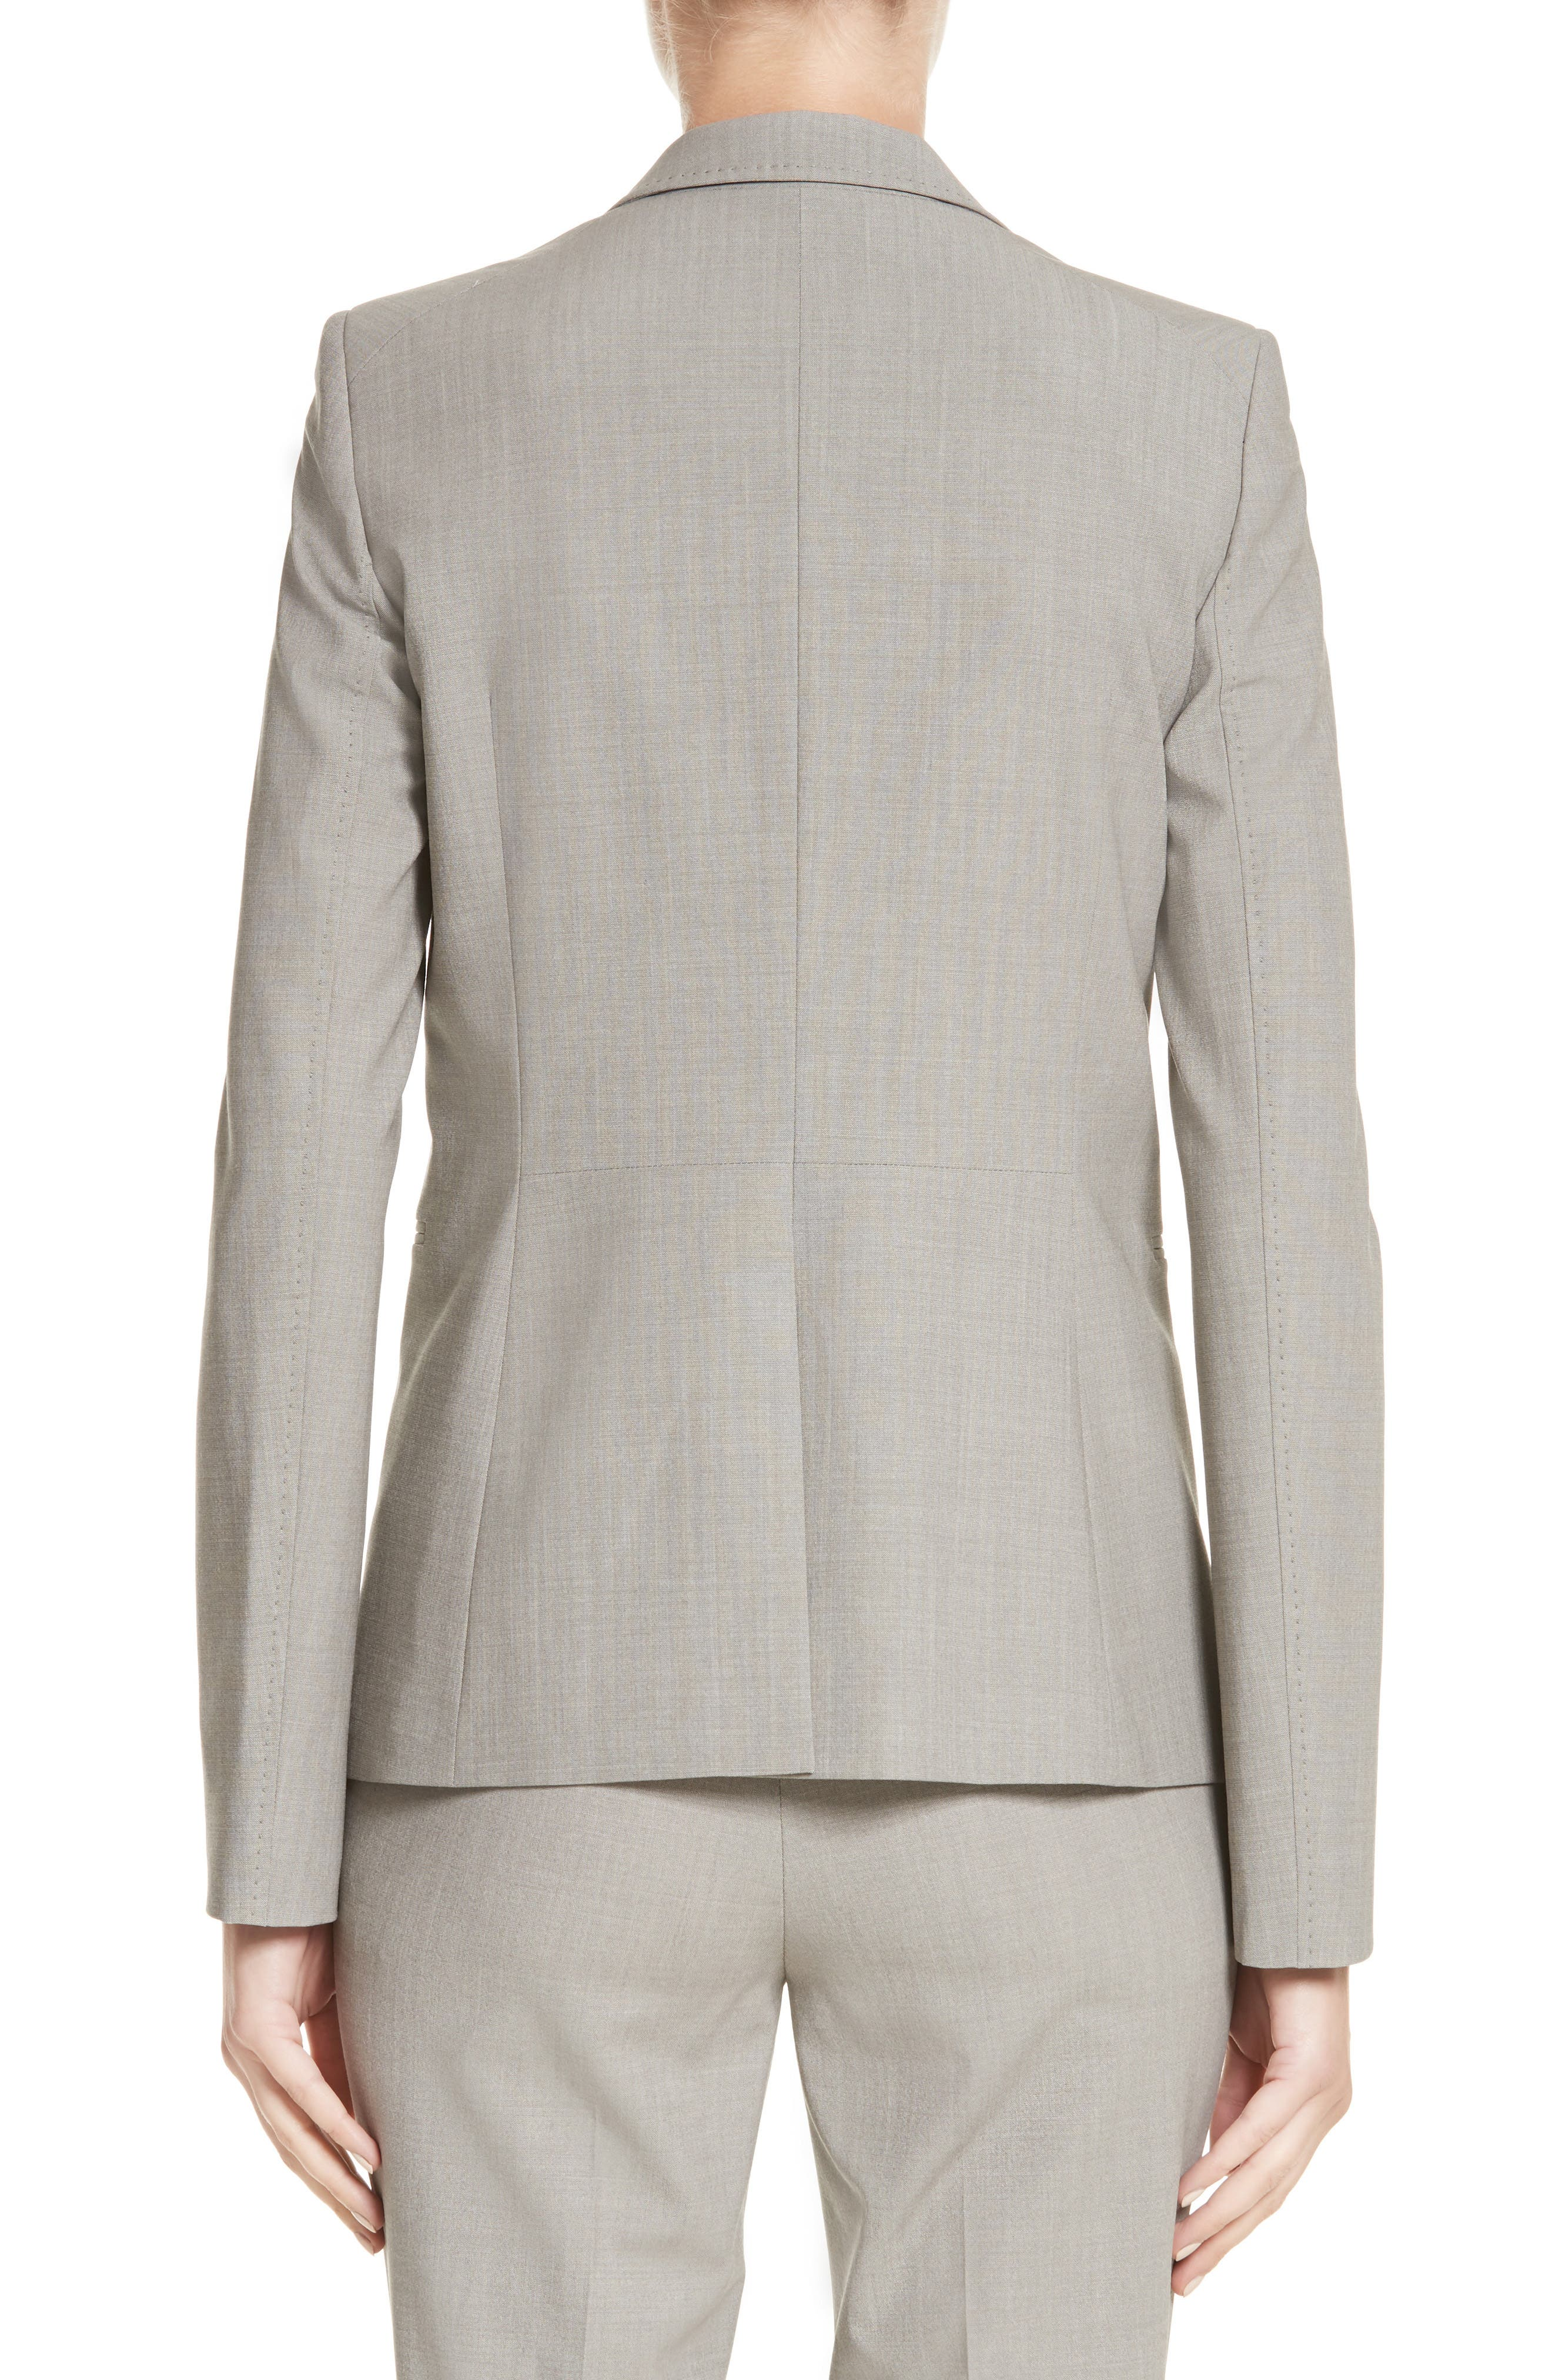 Lyndon Stretch Wool Blazer,                             Alternate thumbnail 2, color,                             Feather Grey Melange